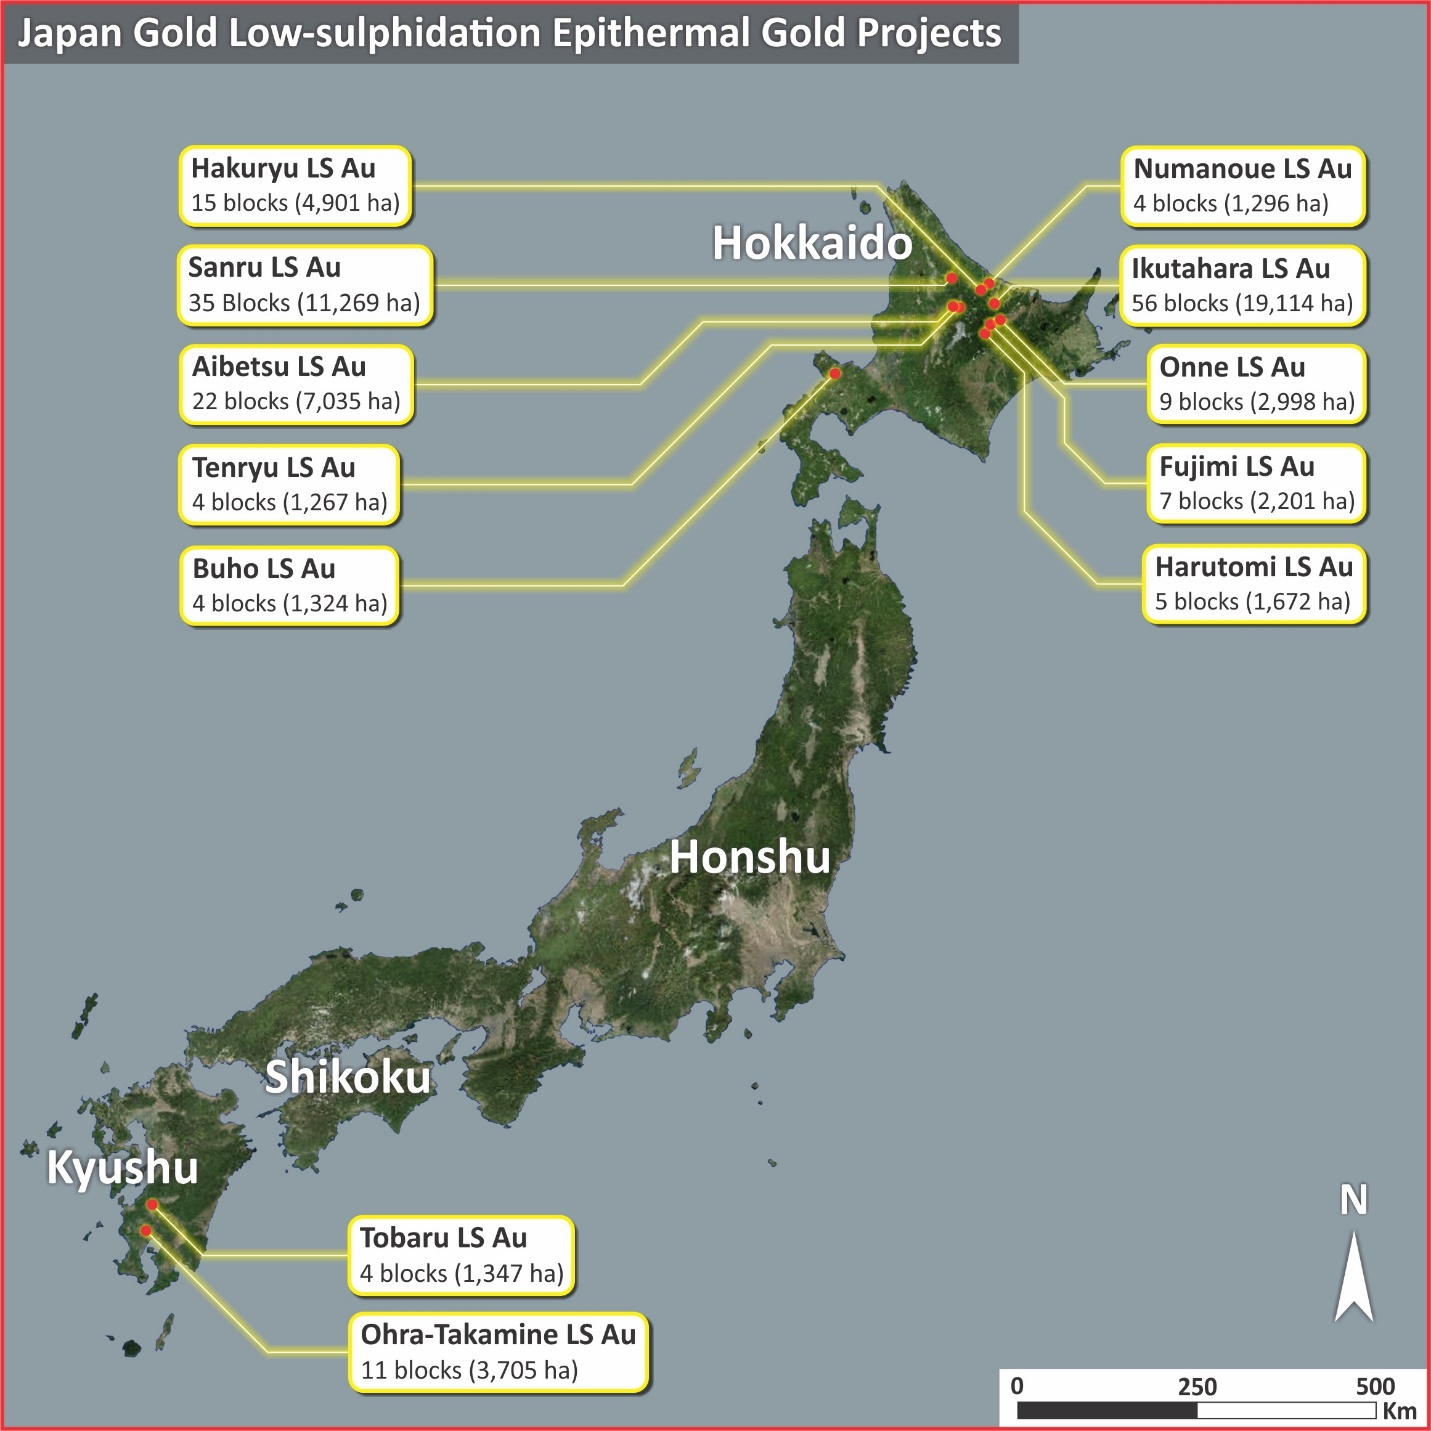 20171022 Japan Epithermal Gold Projects